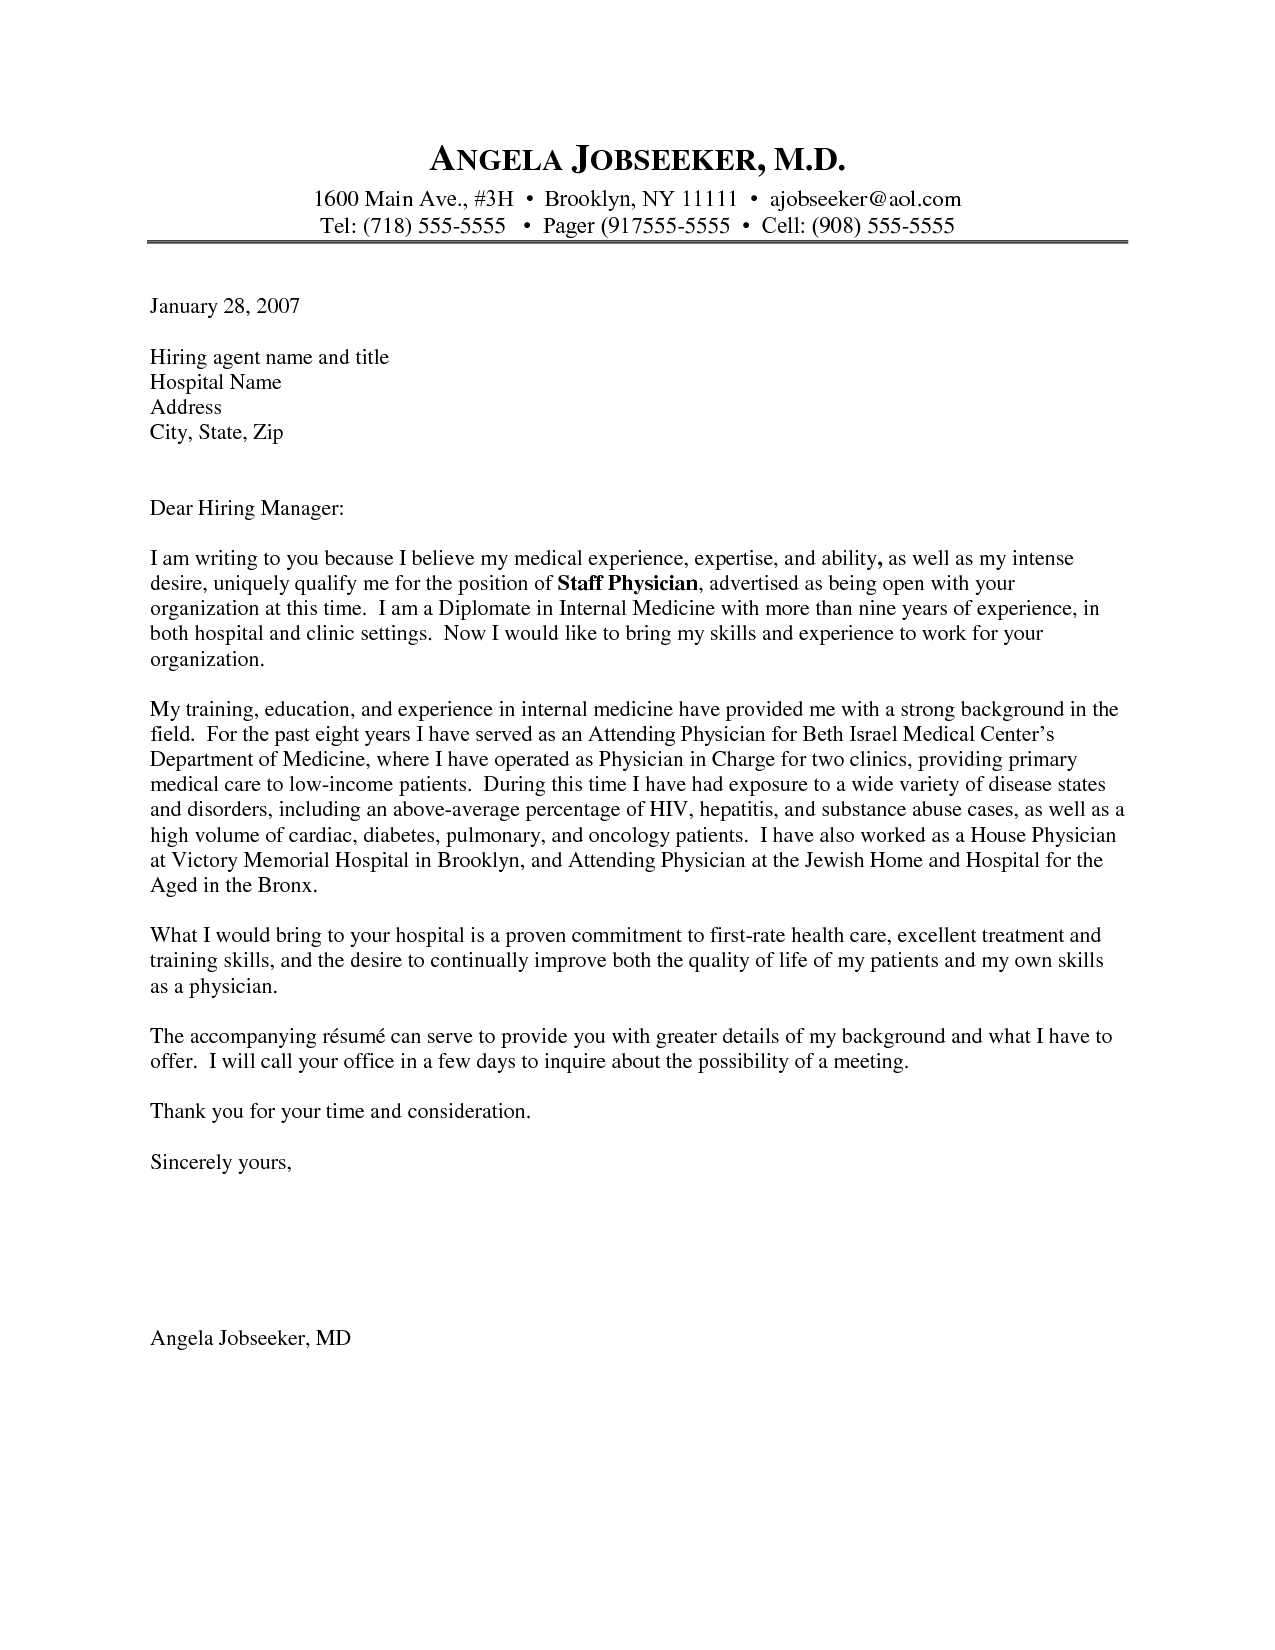 examples of medical coverletters doctor cover letter example - Sample Doctor Cover Letter